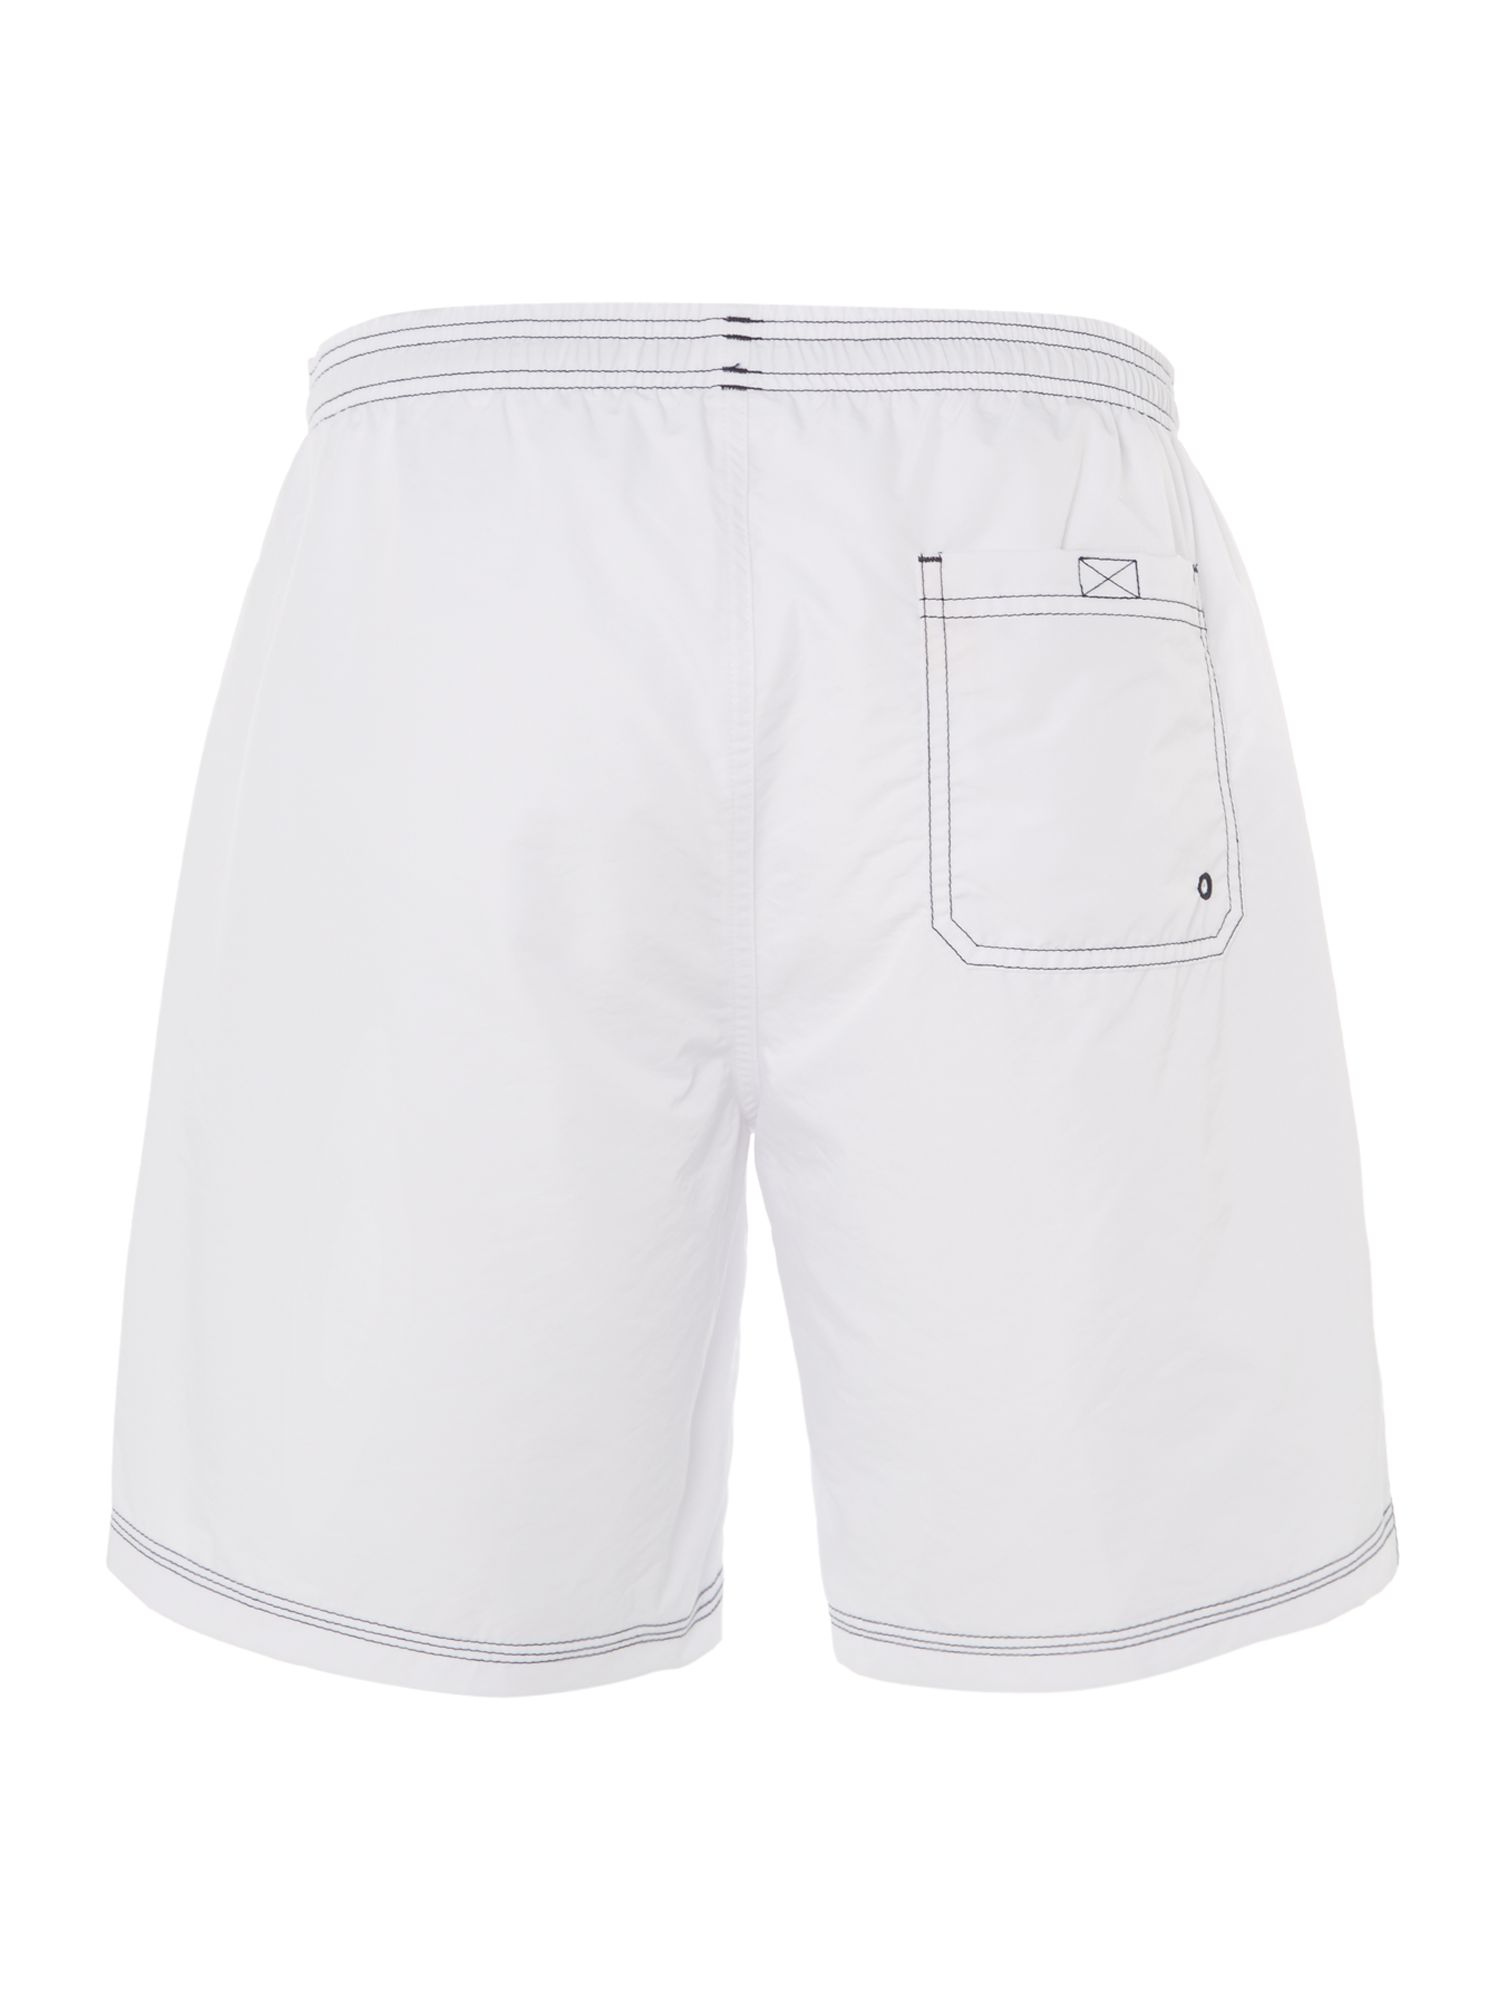 Killifish side logo short